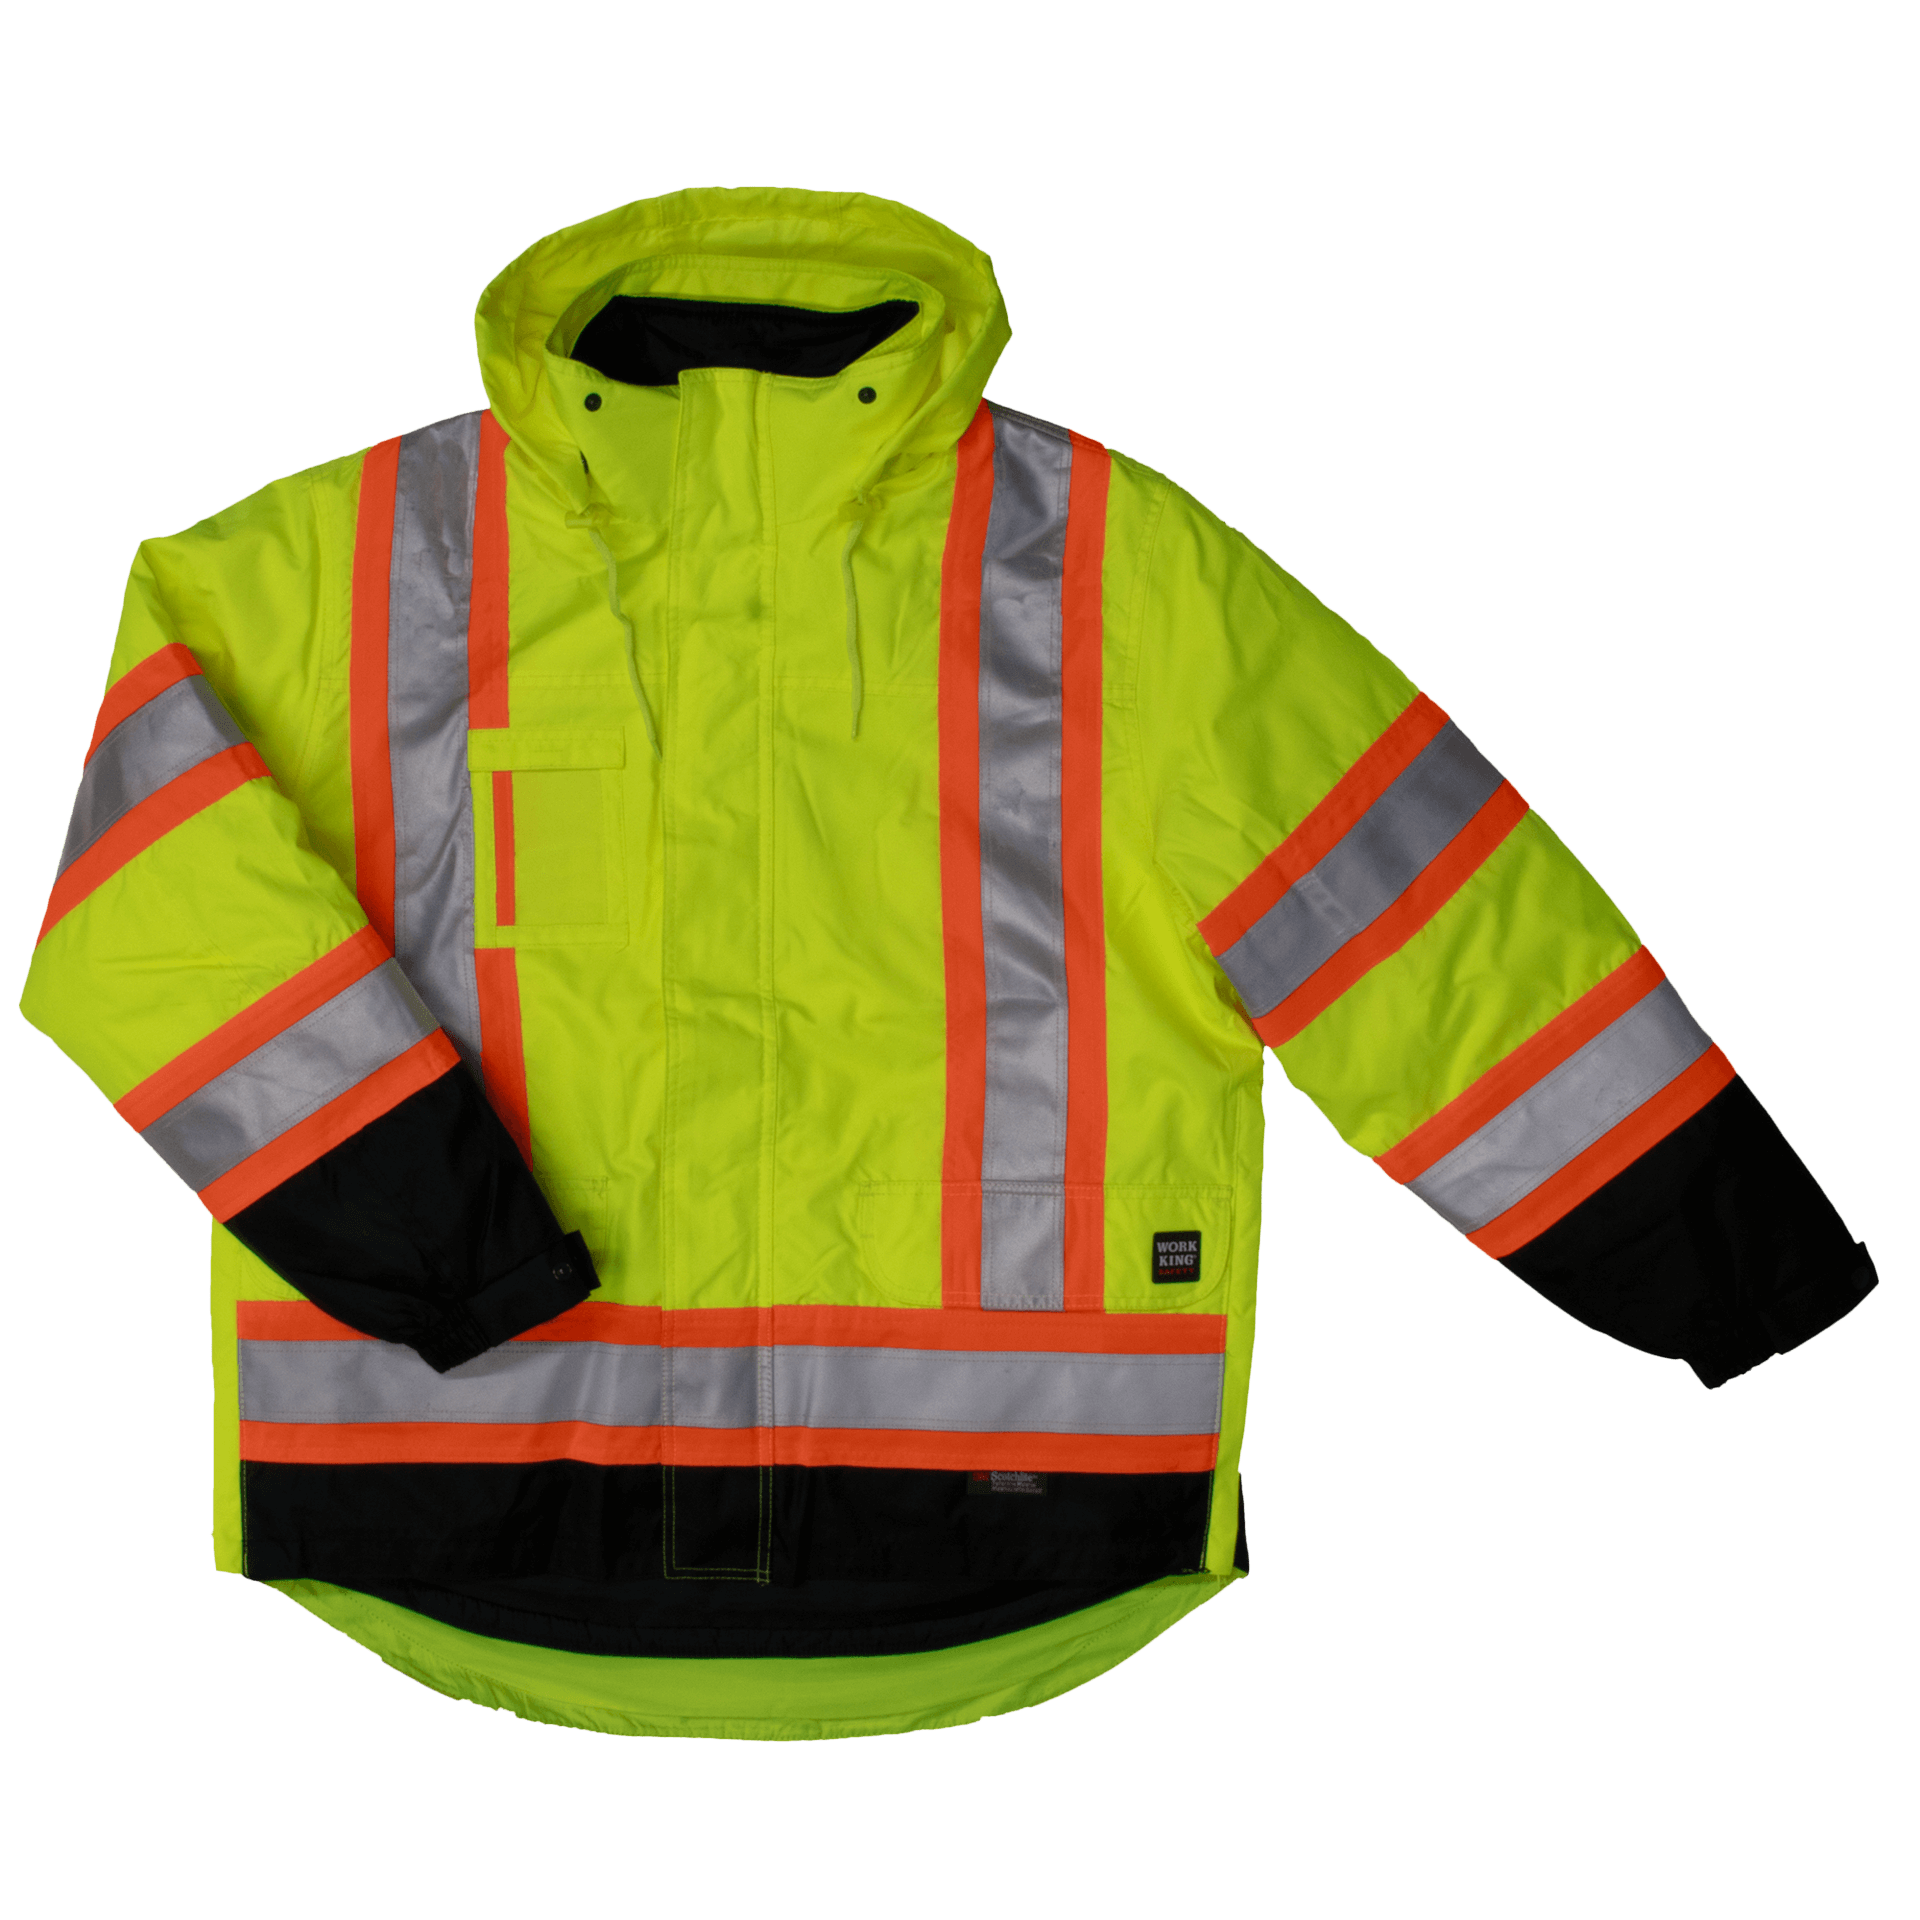 S426-FLGR-F-Work-King-Safety-by-Tough-Duck-Mens-5-in-1-Safety-Jacket-Fluorescent-Green-Front